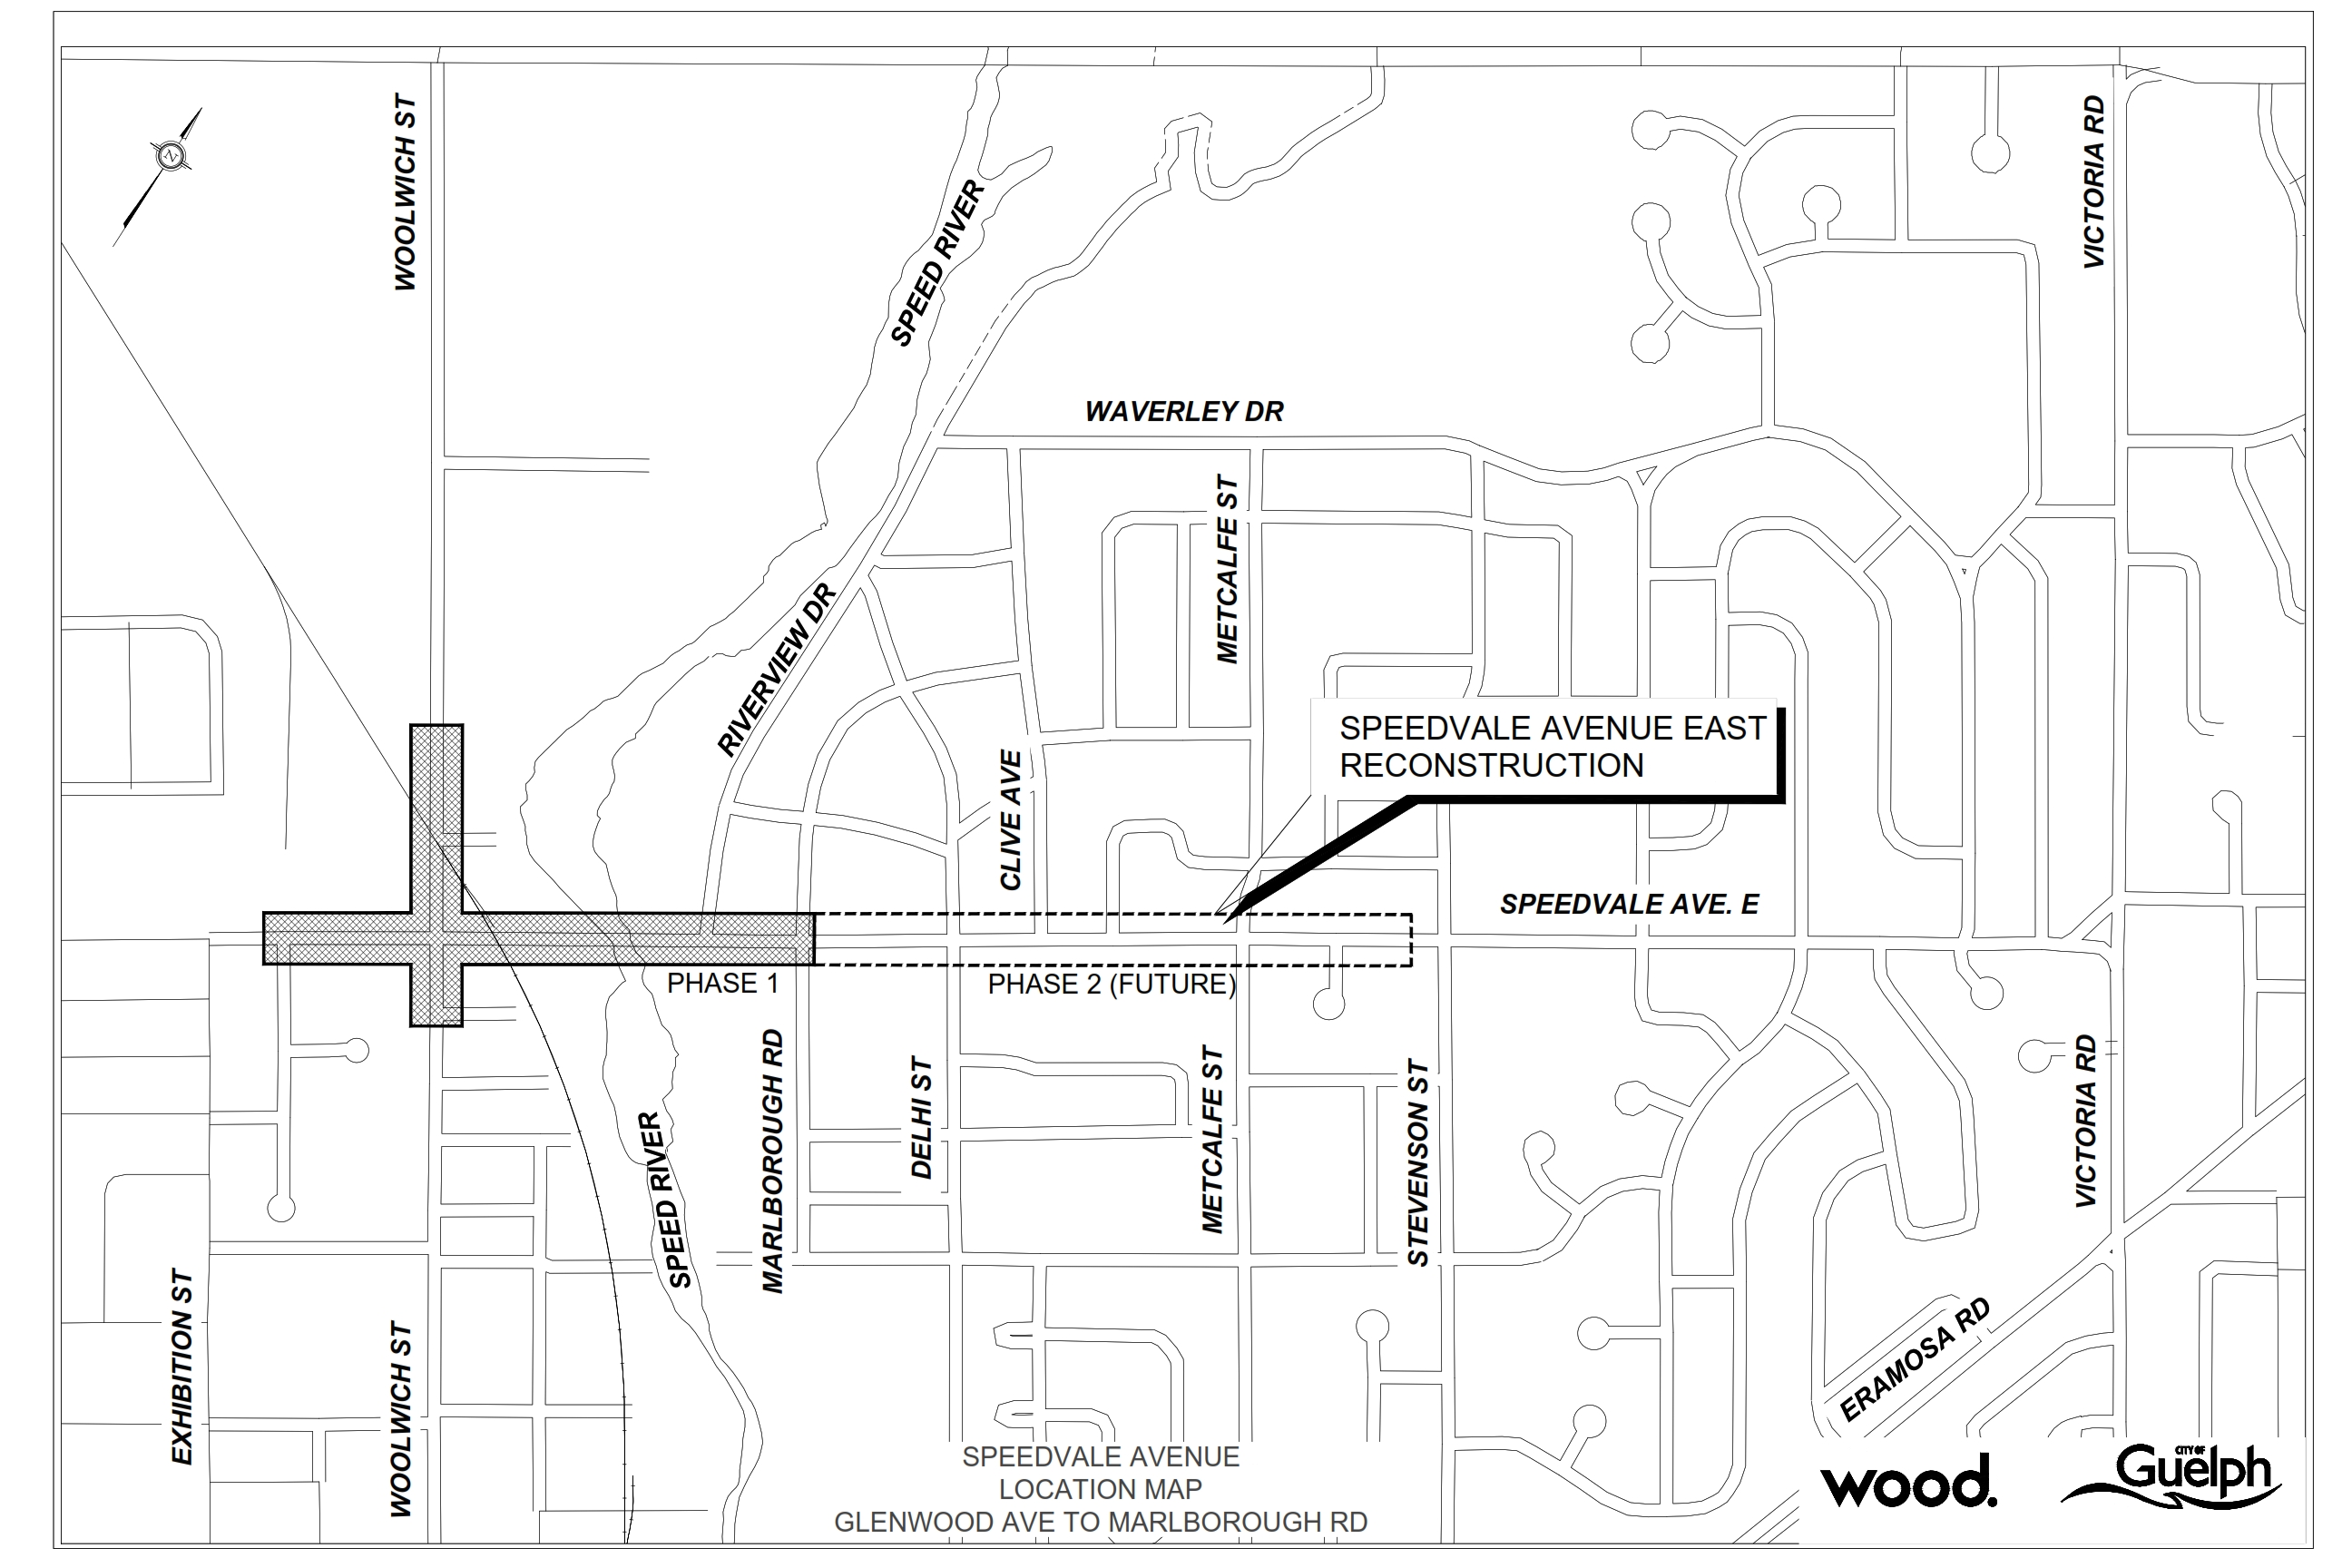 Map of construction zones in Phase 1 and Phase 2 of the Speedvale construction project